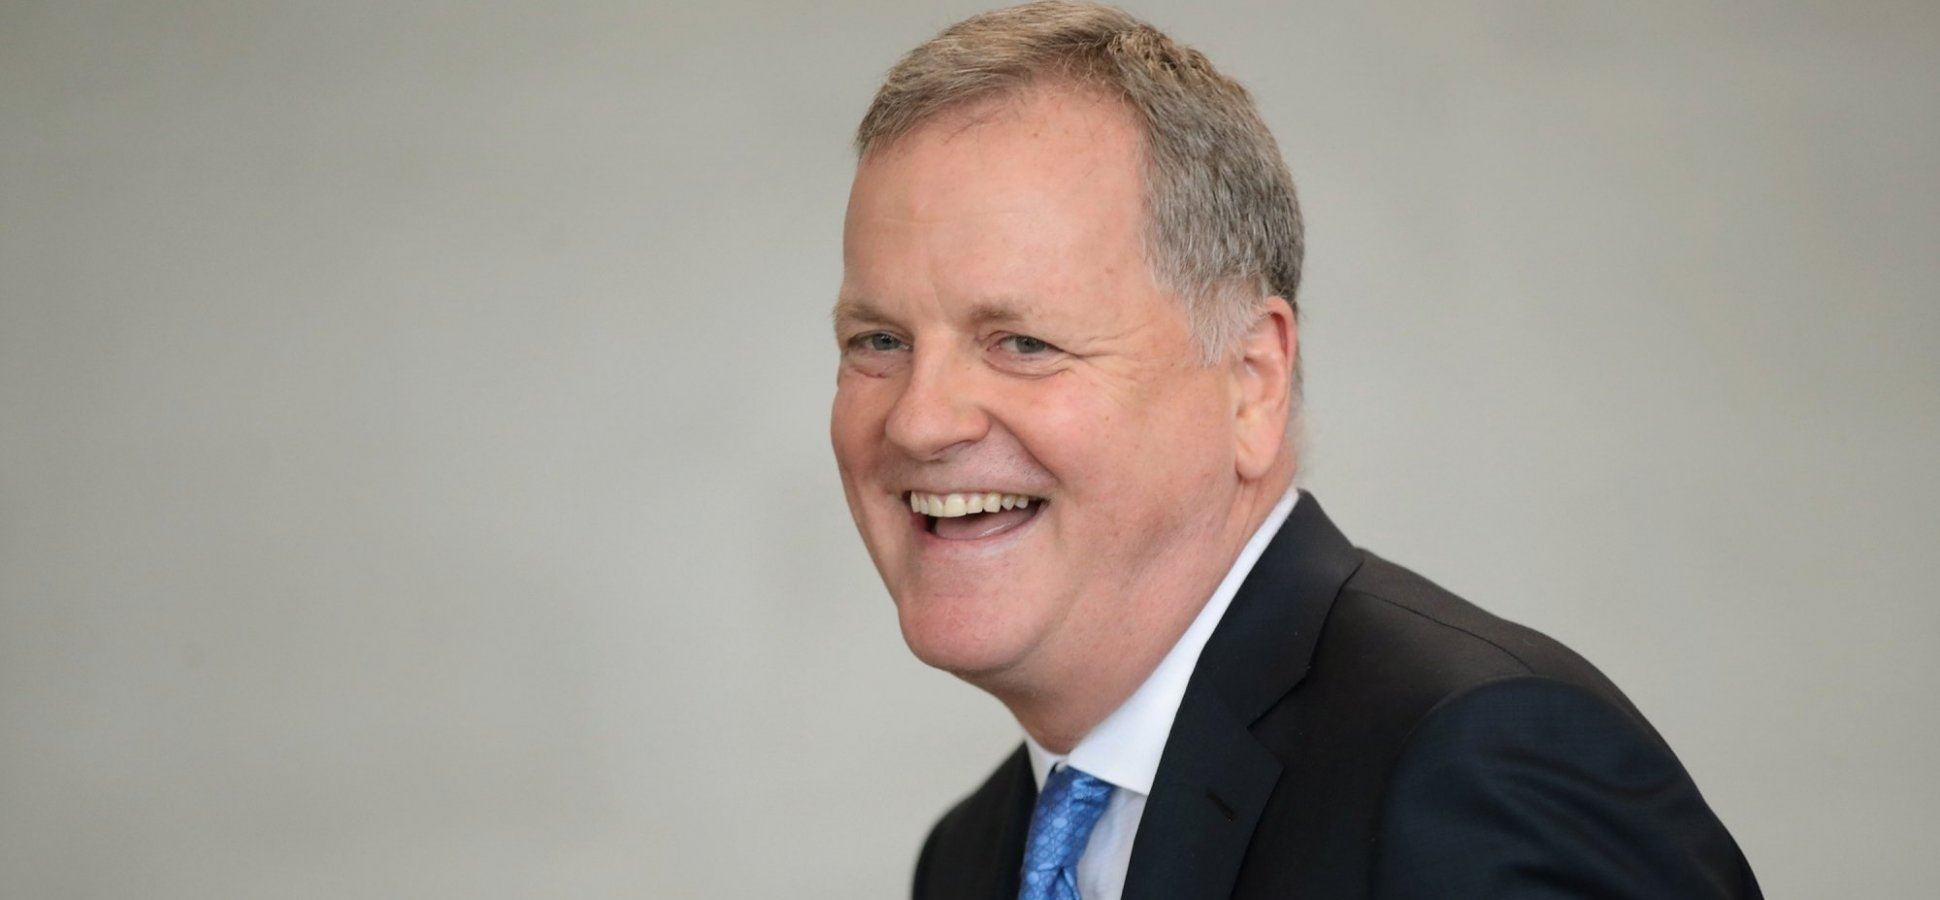 American Airlines' CEO Finally Flew in the Airline's New, Maximum Discomfort Planes. Here's His Review